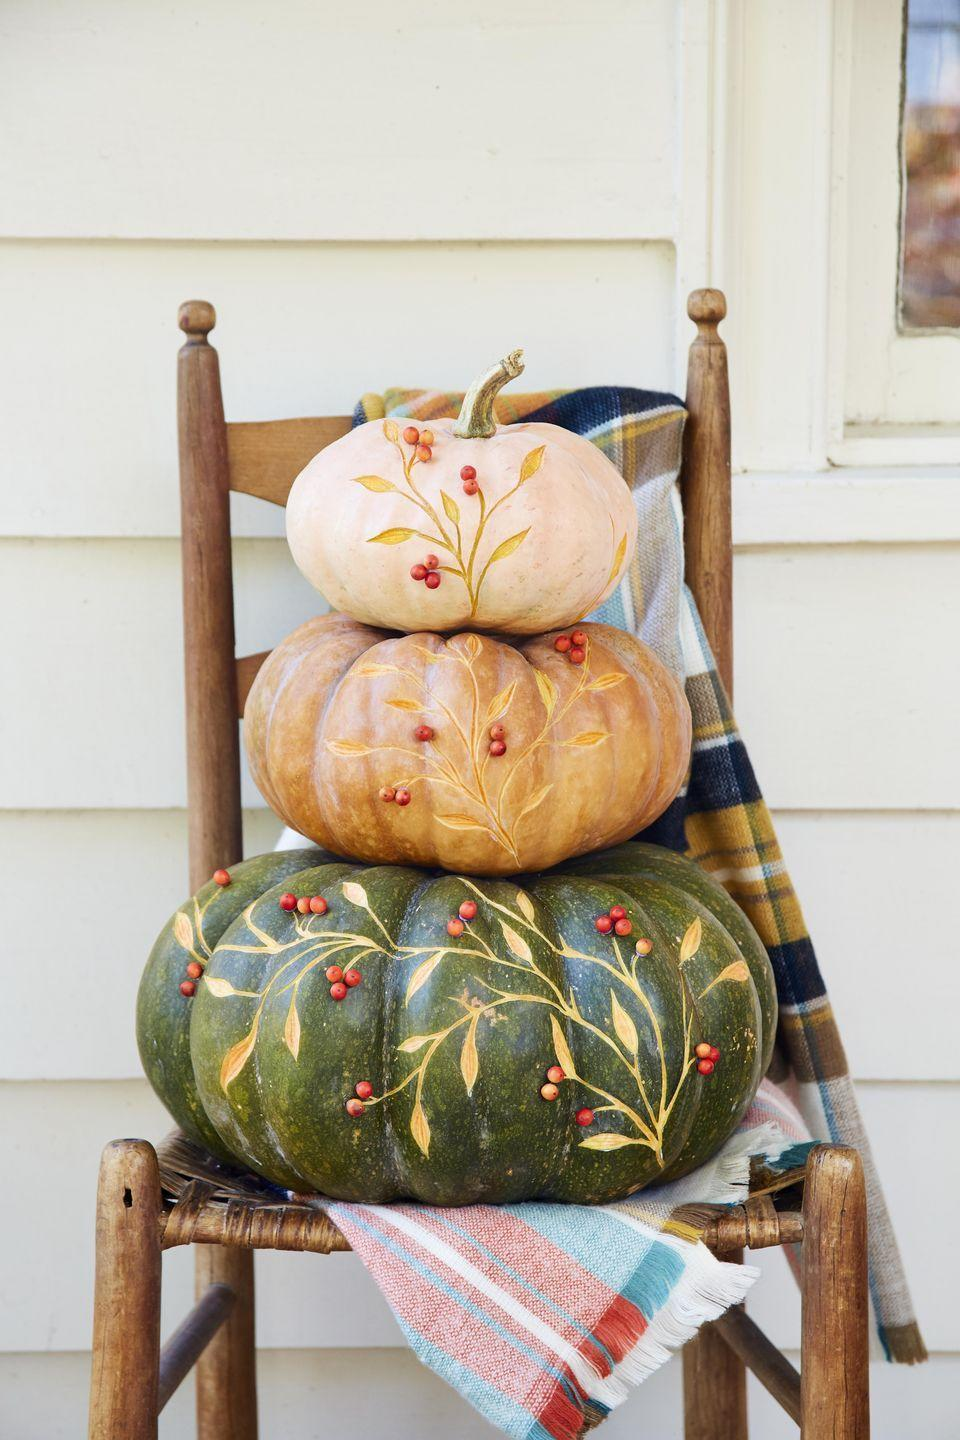 <p>The perfect sophisticated decor for greeting guests to your front door. Place directly on the porch or layer on a vintage ladderback chair with different color plaid blankets.<strong><br></strong></p><p><strong>Make the pumpkins:</strong> Purchase one large, one medium, and one small pumpkin (any color combo works) that stack nicely. Remove the stems from the large and medium pumpkin. Lightly sketch a vine pattern on a pumpkin with a pencil. Use a linoleum carving tool to etch out the pattern. Once complete attach red berries or beads with hot glue.</p>